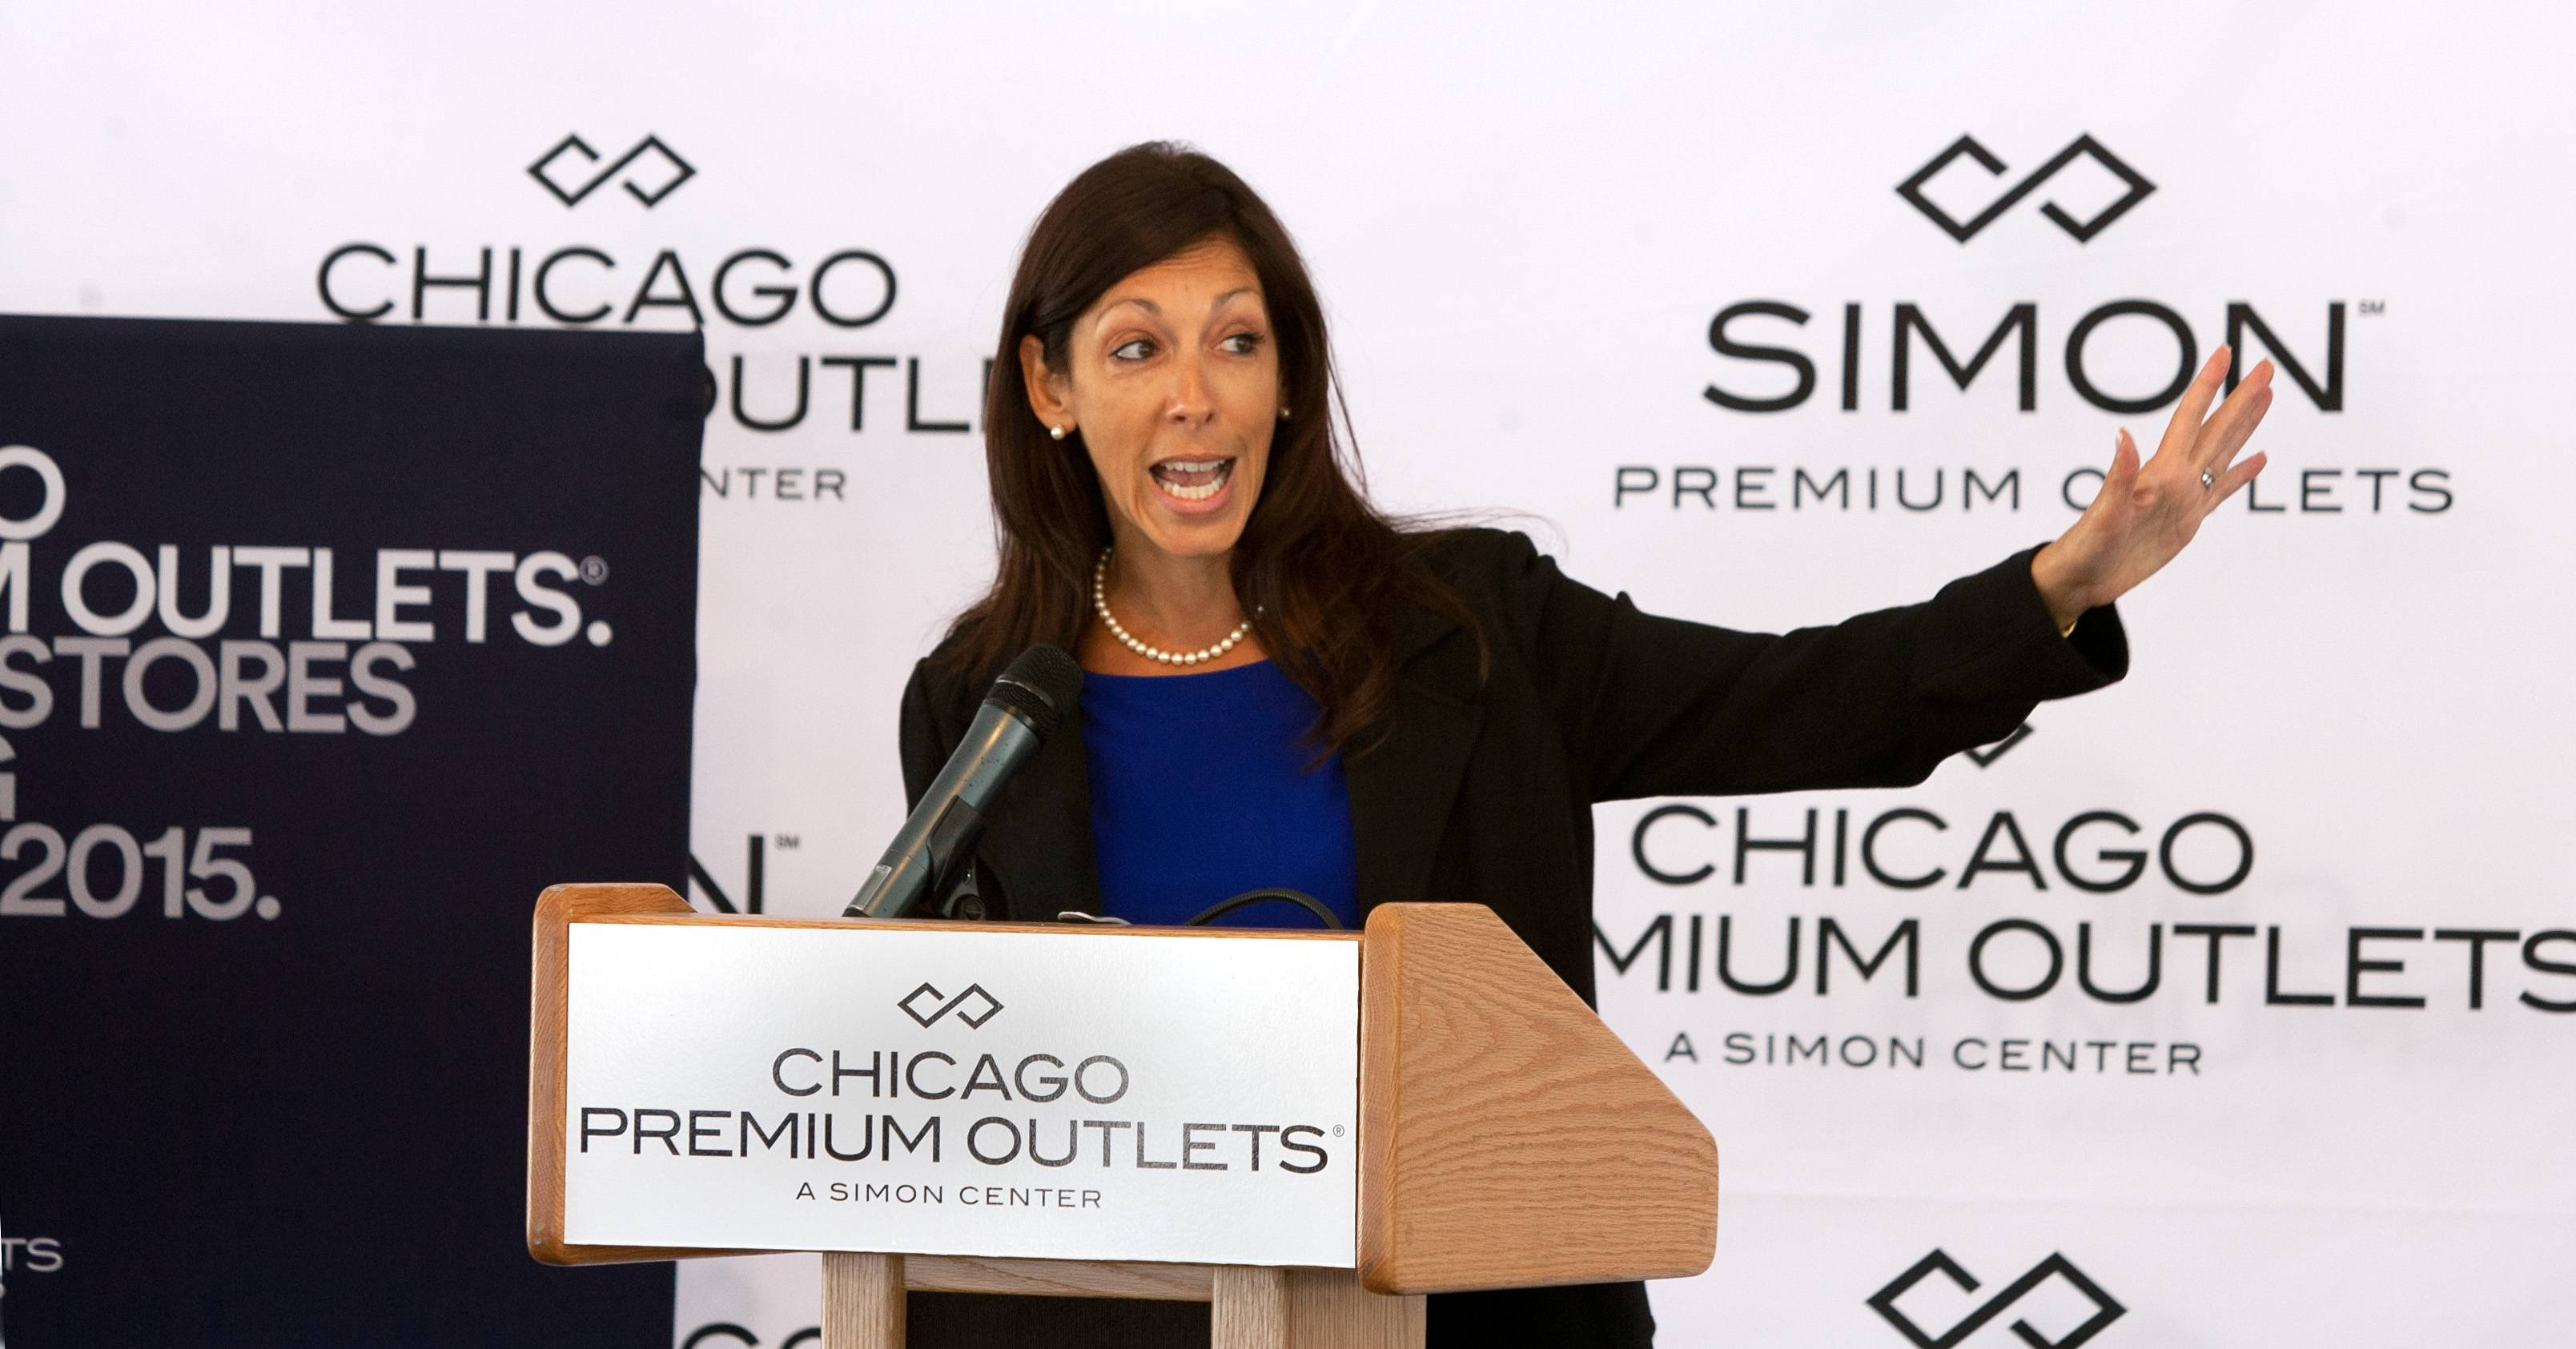 Danielle De Vita, senior vice president of development and acquisitions for Simon Premium Outlets, speaks Wednesday before a groundbreaking for a 50-store expansion of Chicago Premium Outlets in Aurora.